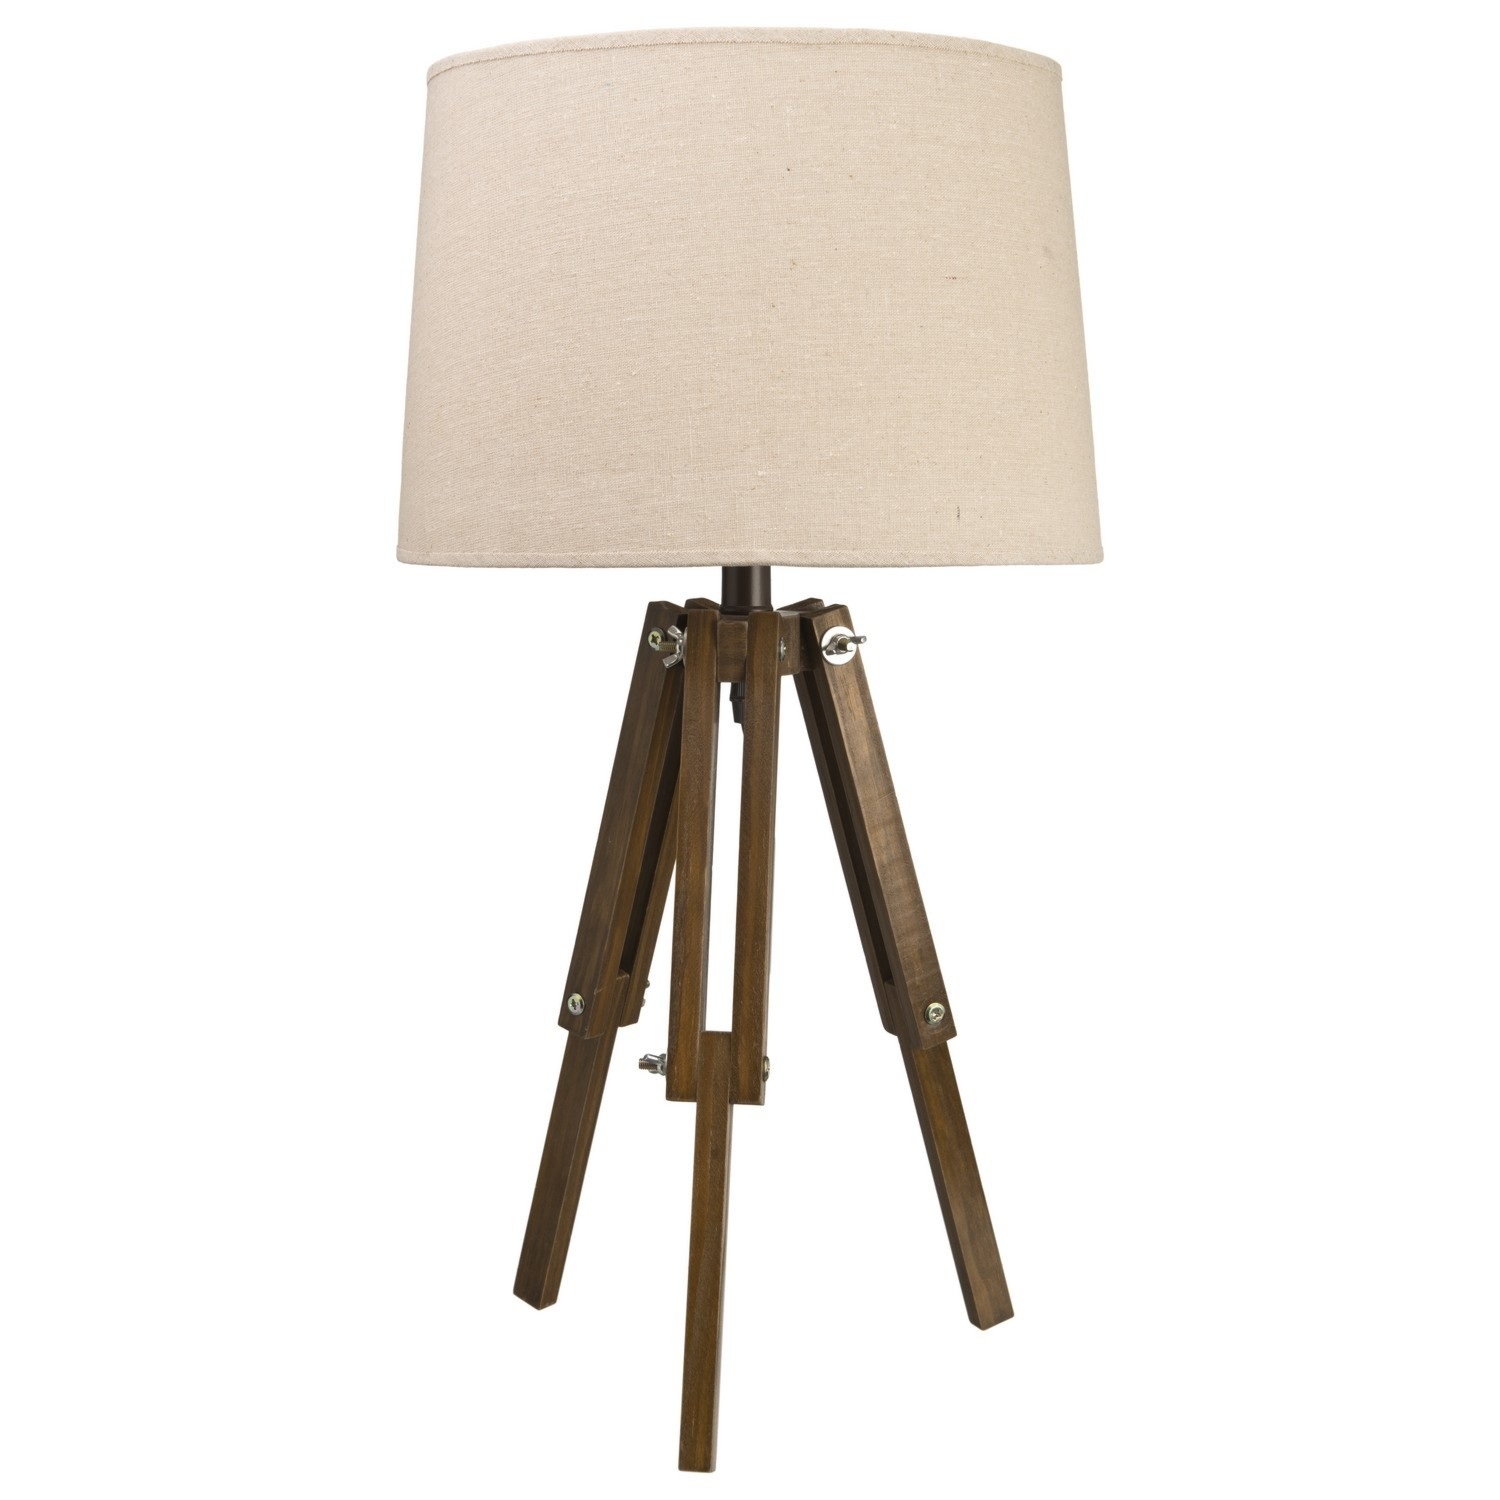 Tripod Wood Floor Lamp | Tripod Lamp Wood | Tripod Lamp